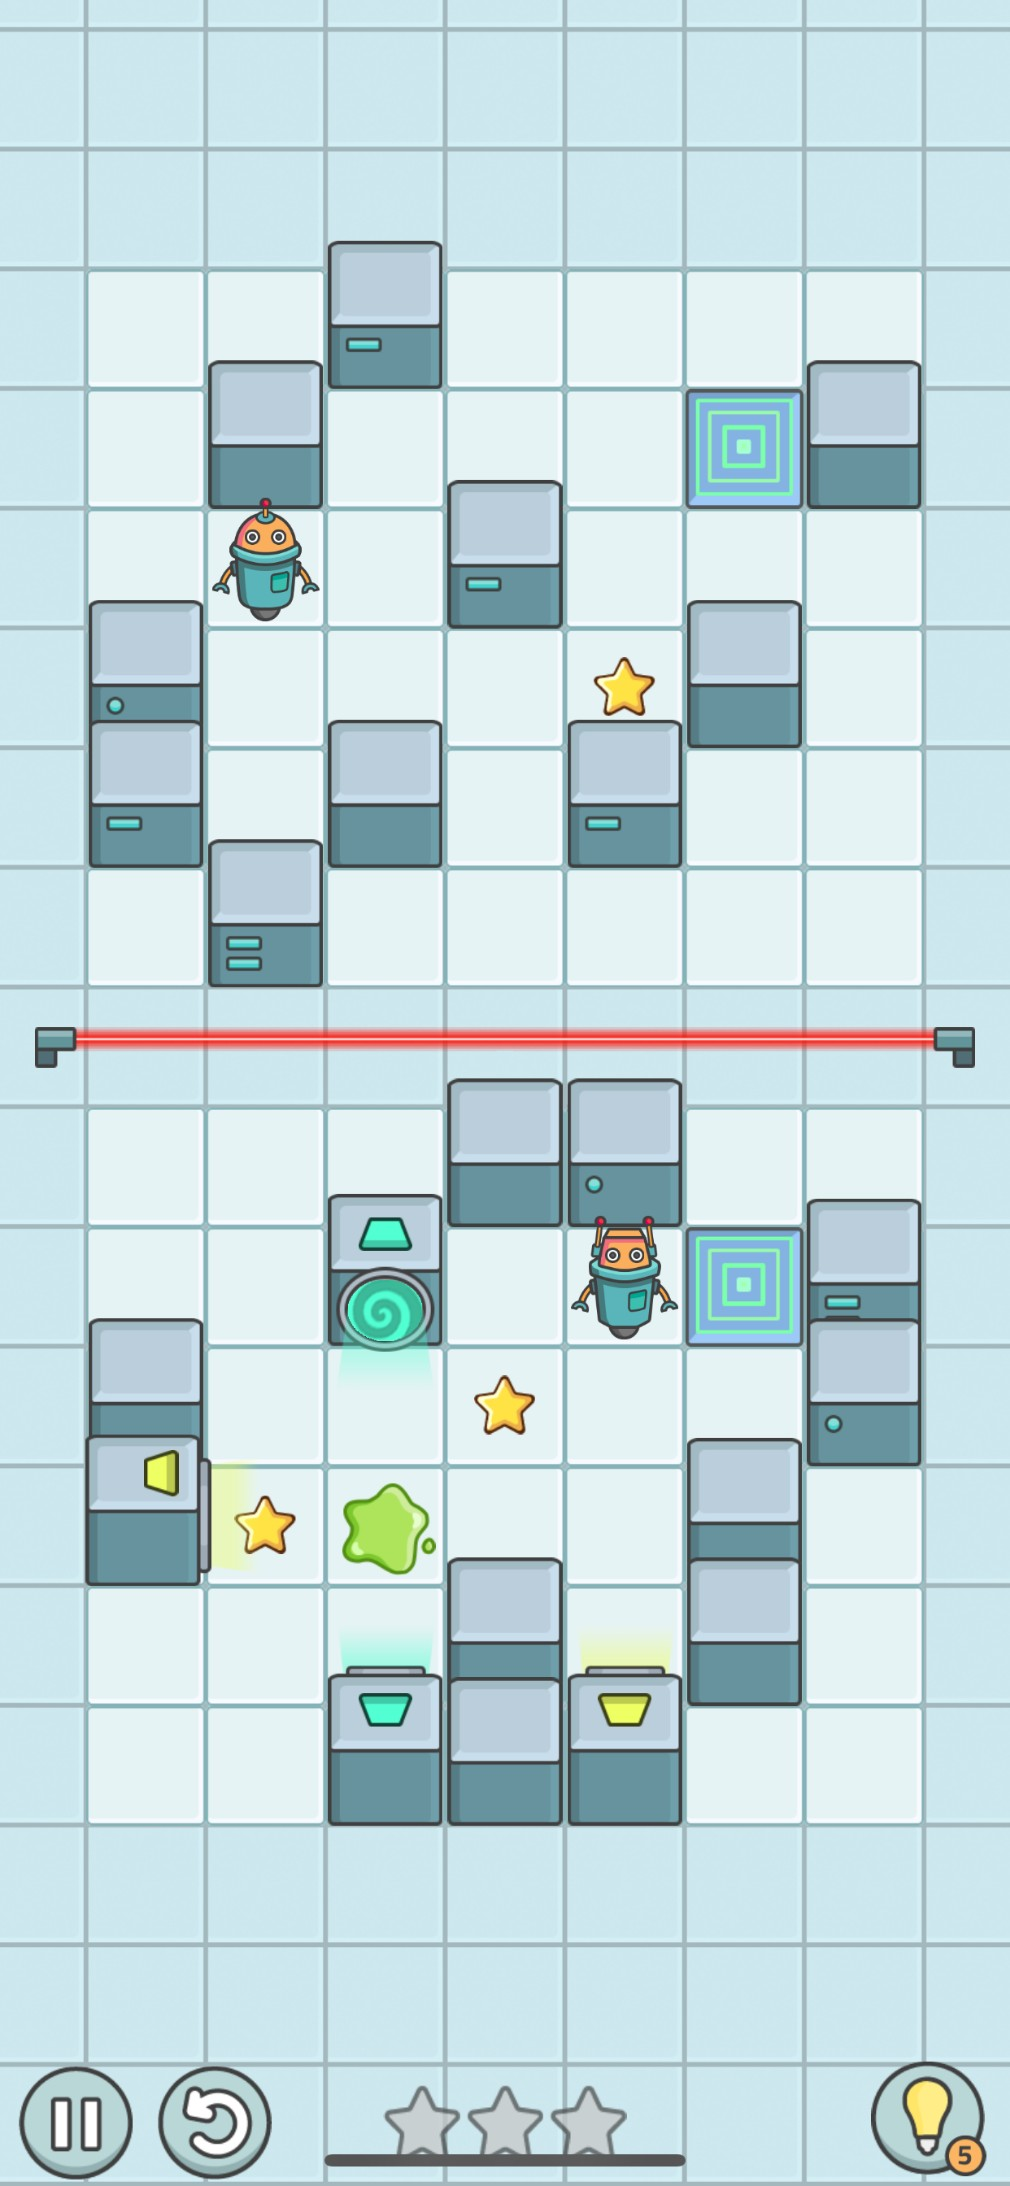 Beep Boop Bots iOS screenshot - A puzzle with portals and goo